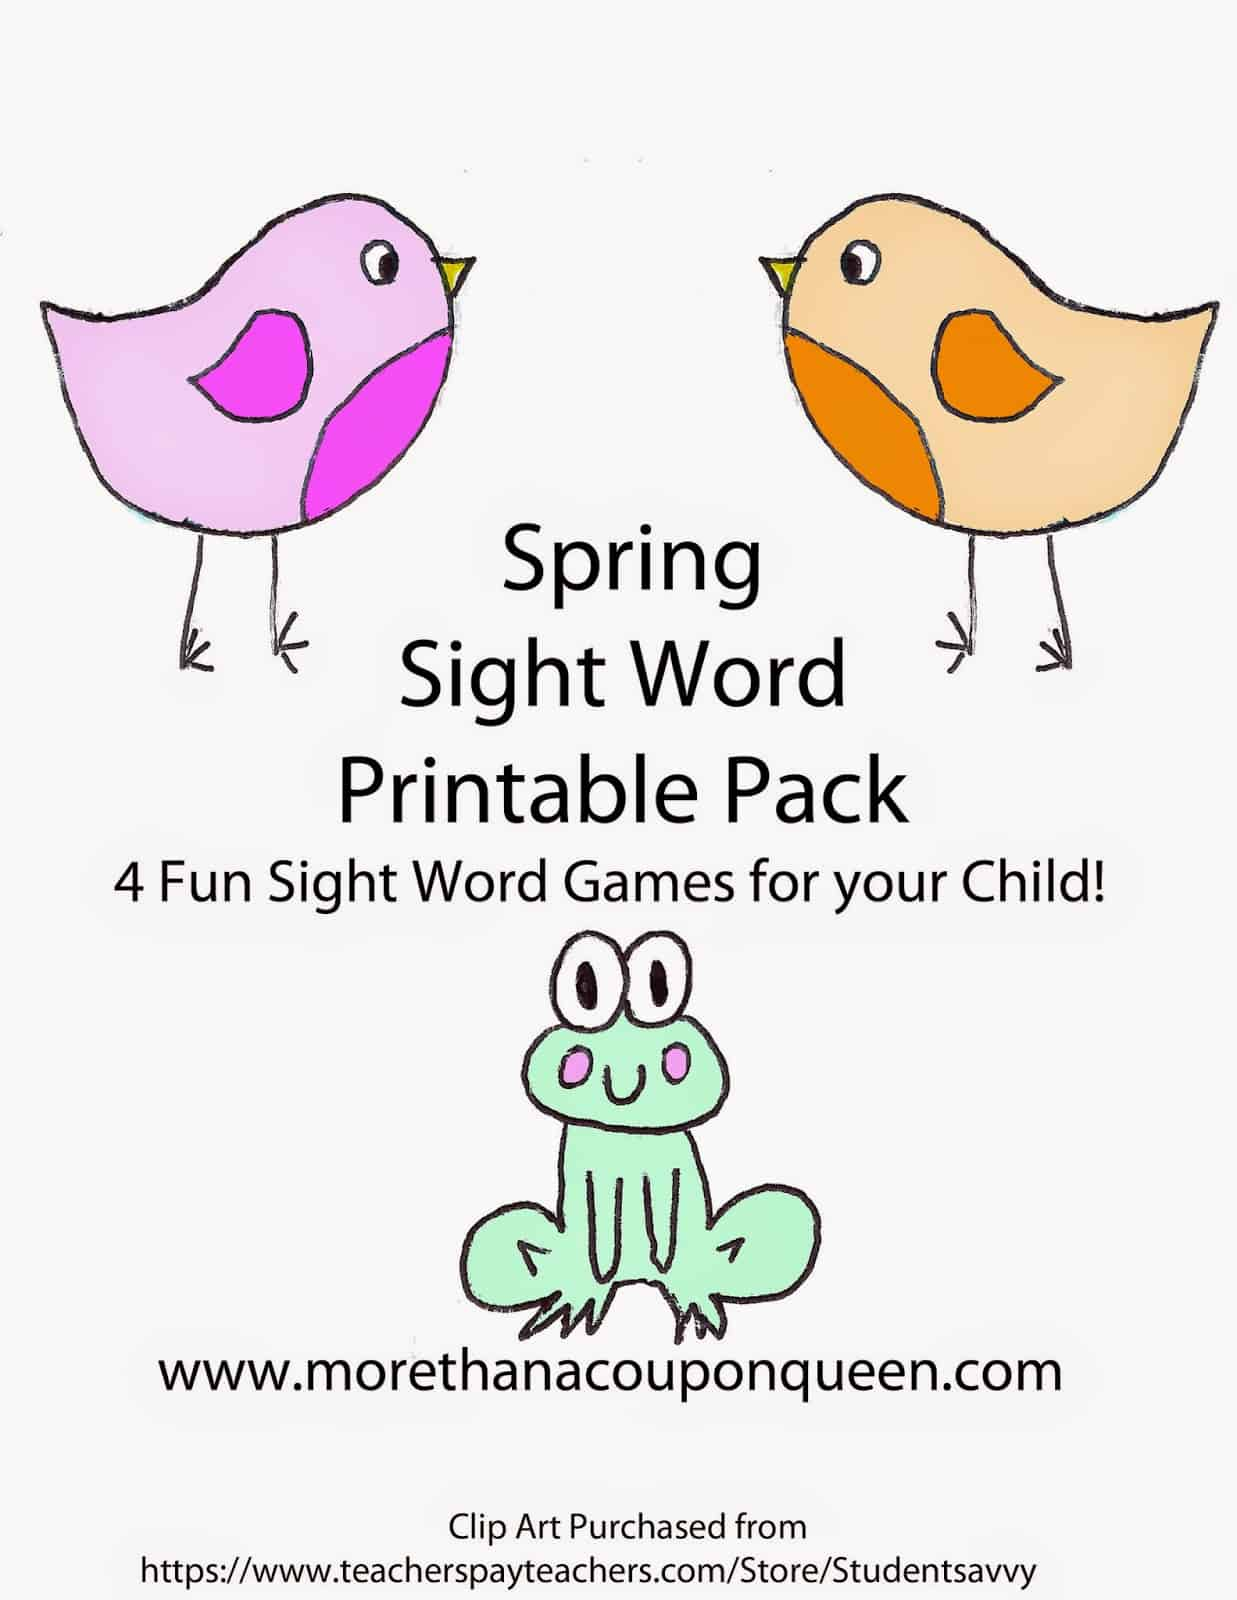 Spring Sight Word Printable Pack